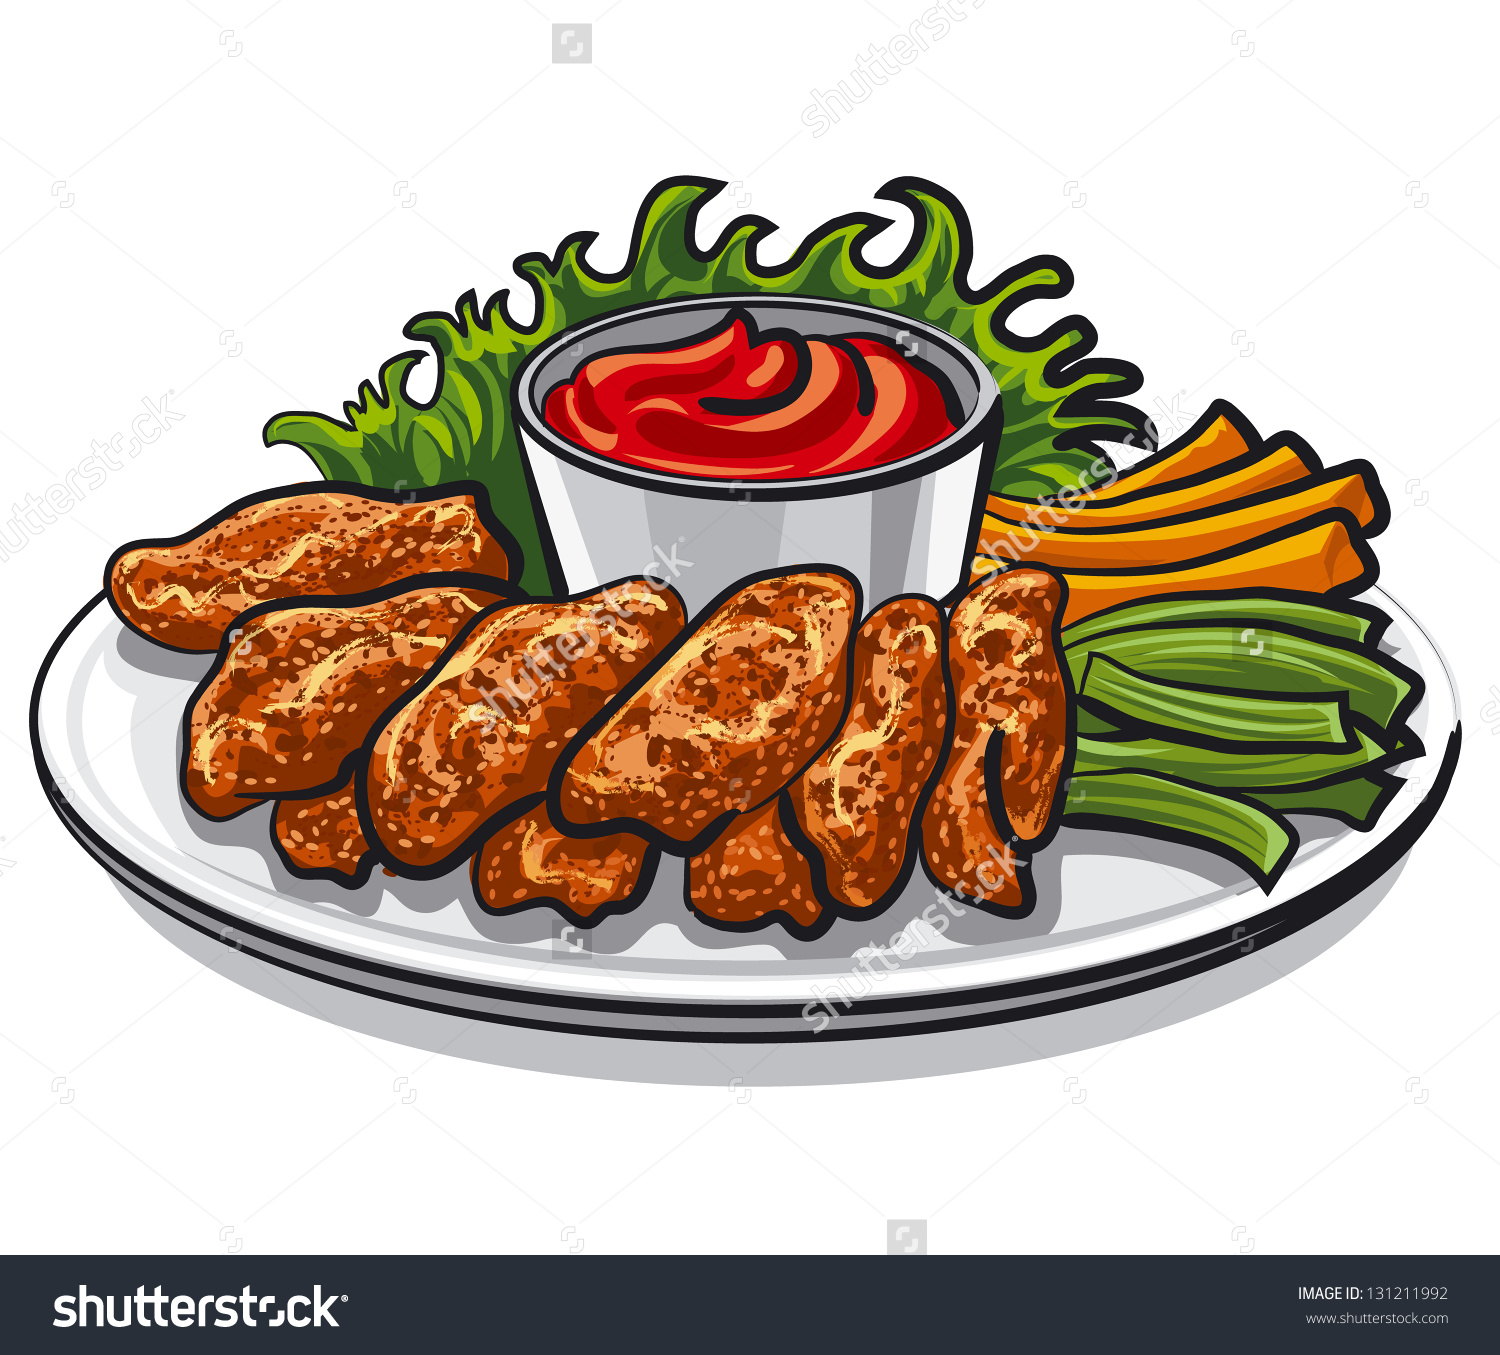 Chicken Wing Clipart. Save to a lightbox